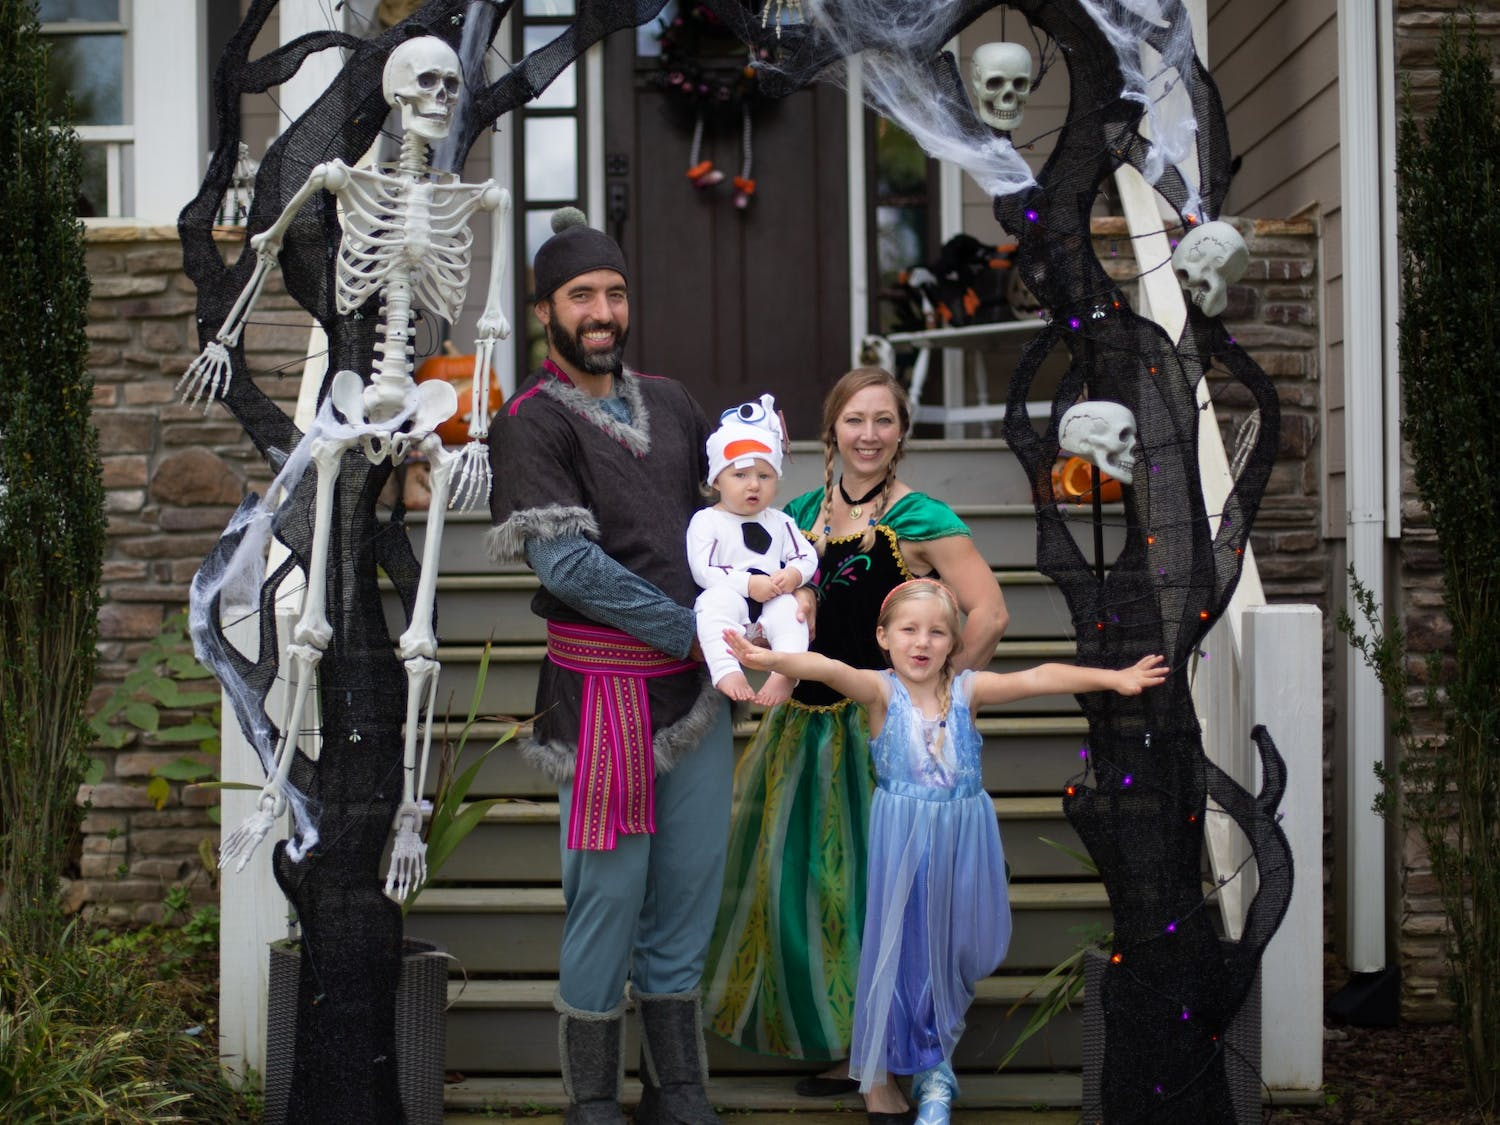 From left: Chad, Liam, Kelly, and Evelyn Edwards pose for a portrait in their front yard. The Edwards family chose to dress as characters from Disney's Frozen: Chad is Kristoff, Liam is Olaf, Kelly is Anna, and Evelyn is Elsa.